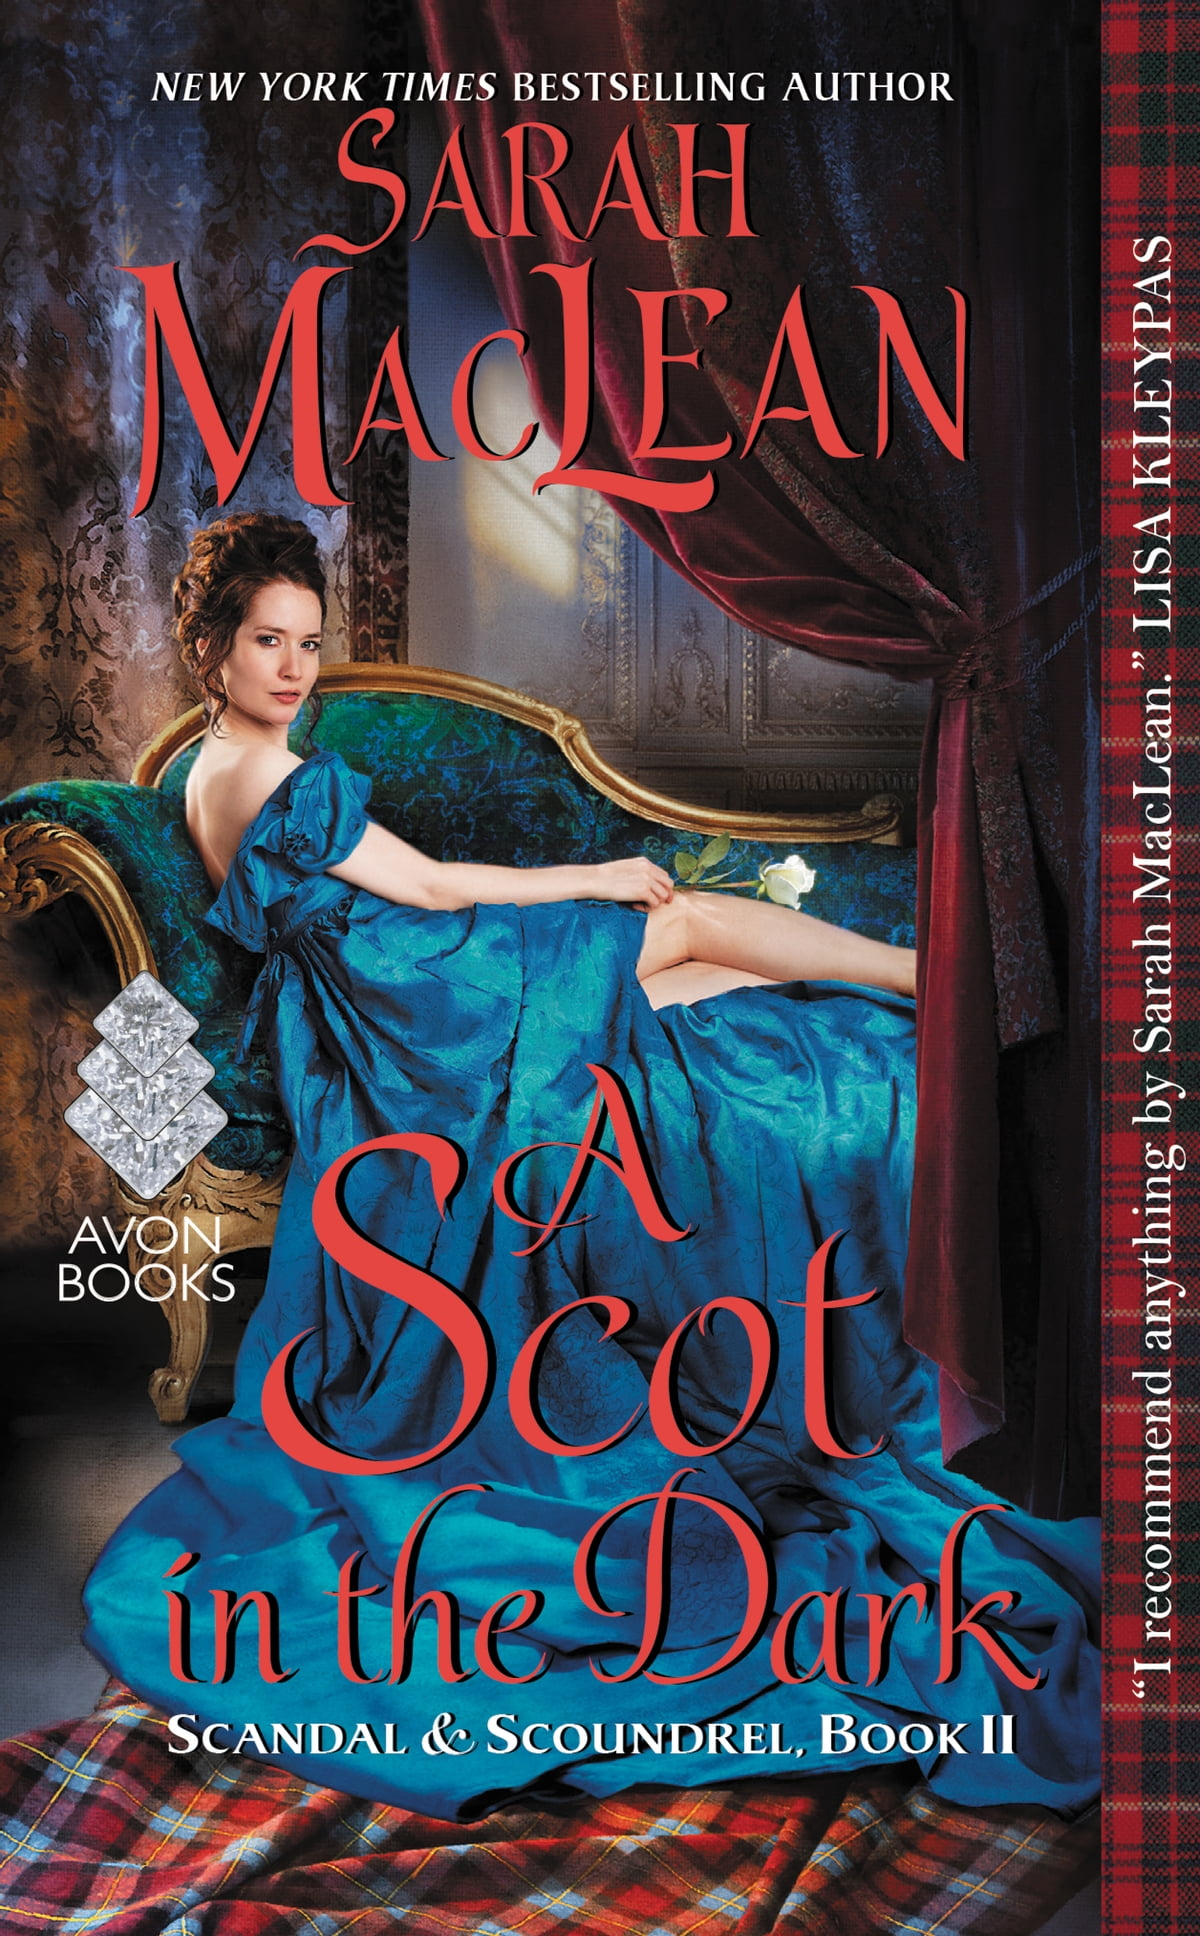 Cold hearted rake ebook by lisa kleypas 9780062371836 rakuten kobo a scot in the dark scandal scoundrel book ii ebook by sarah maclean fandeluxe PDF